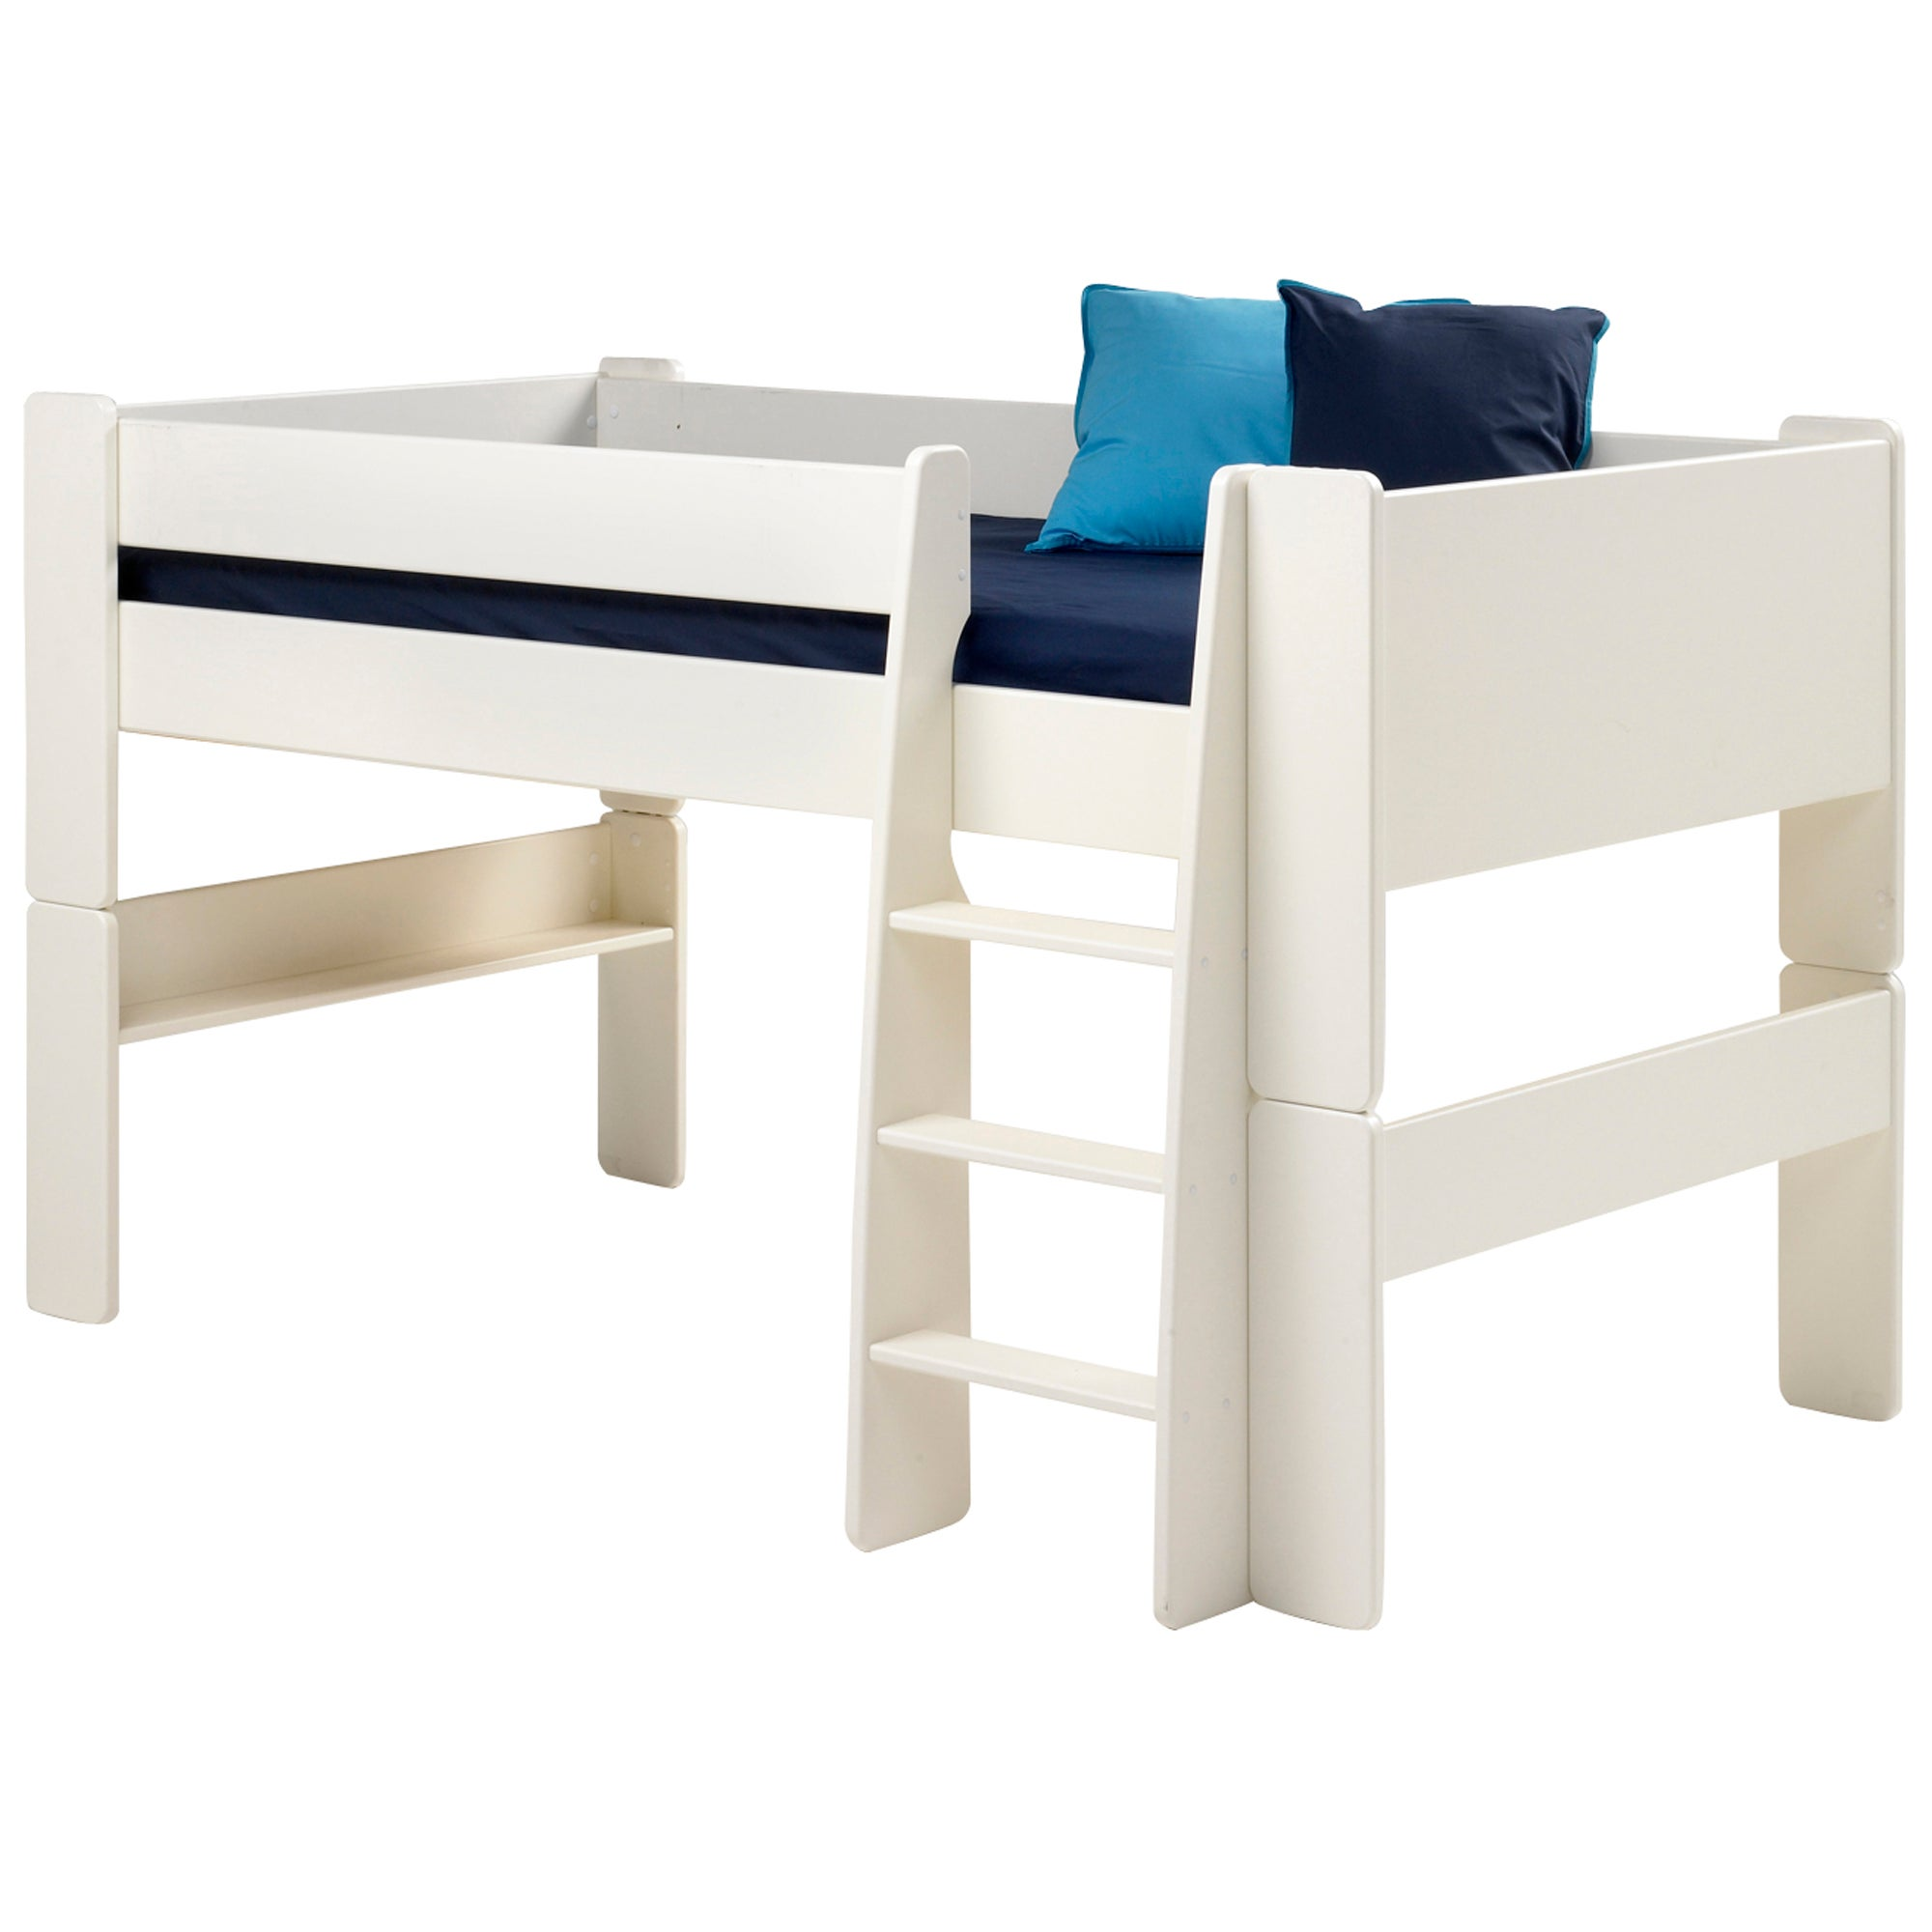 Kids Harper White Mid Sleeper Bed Frame